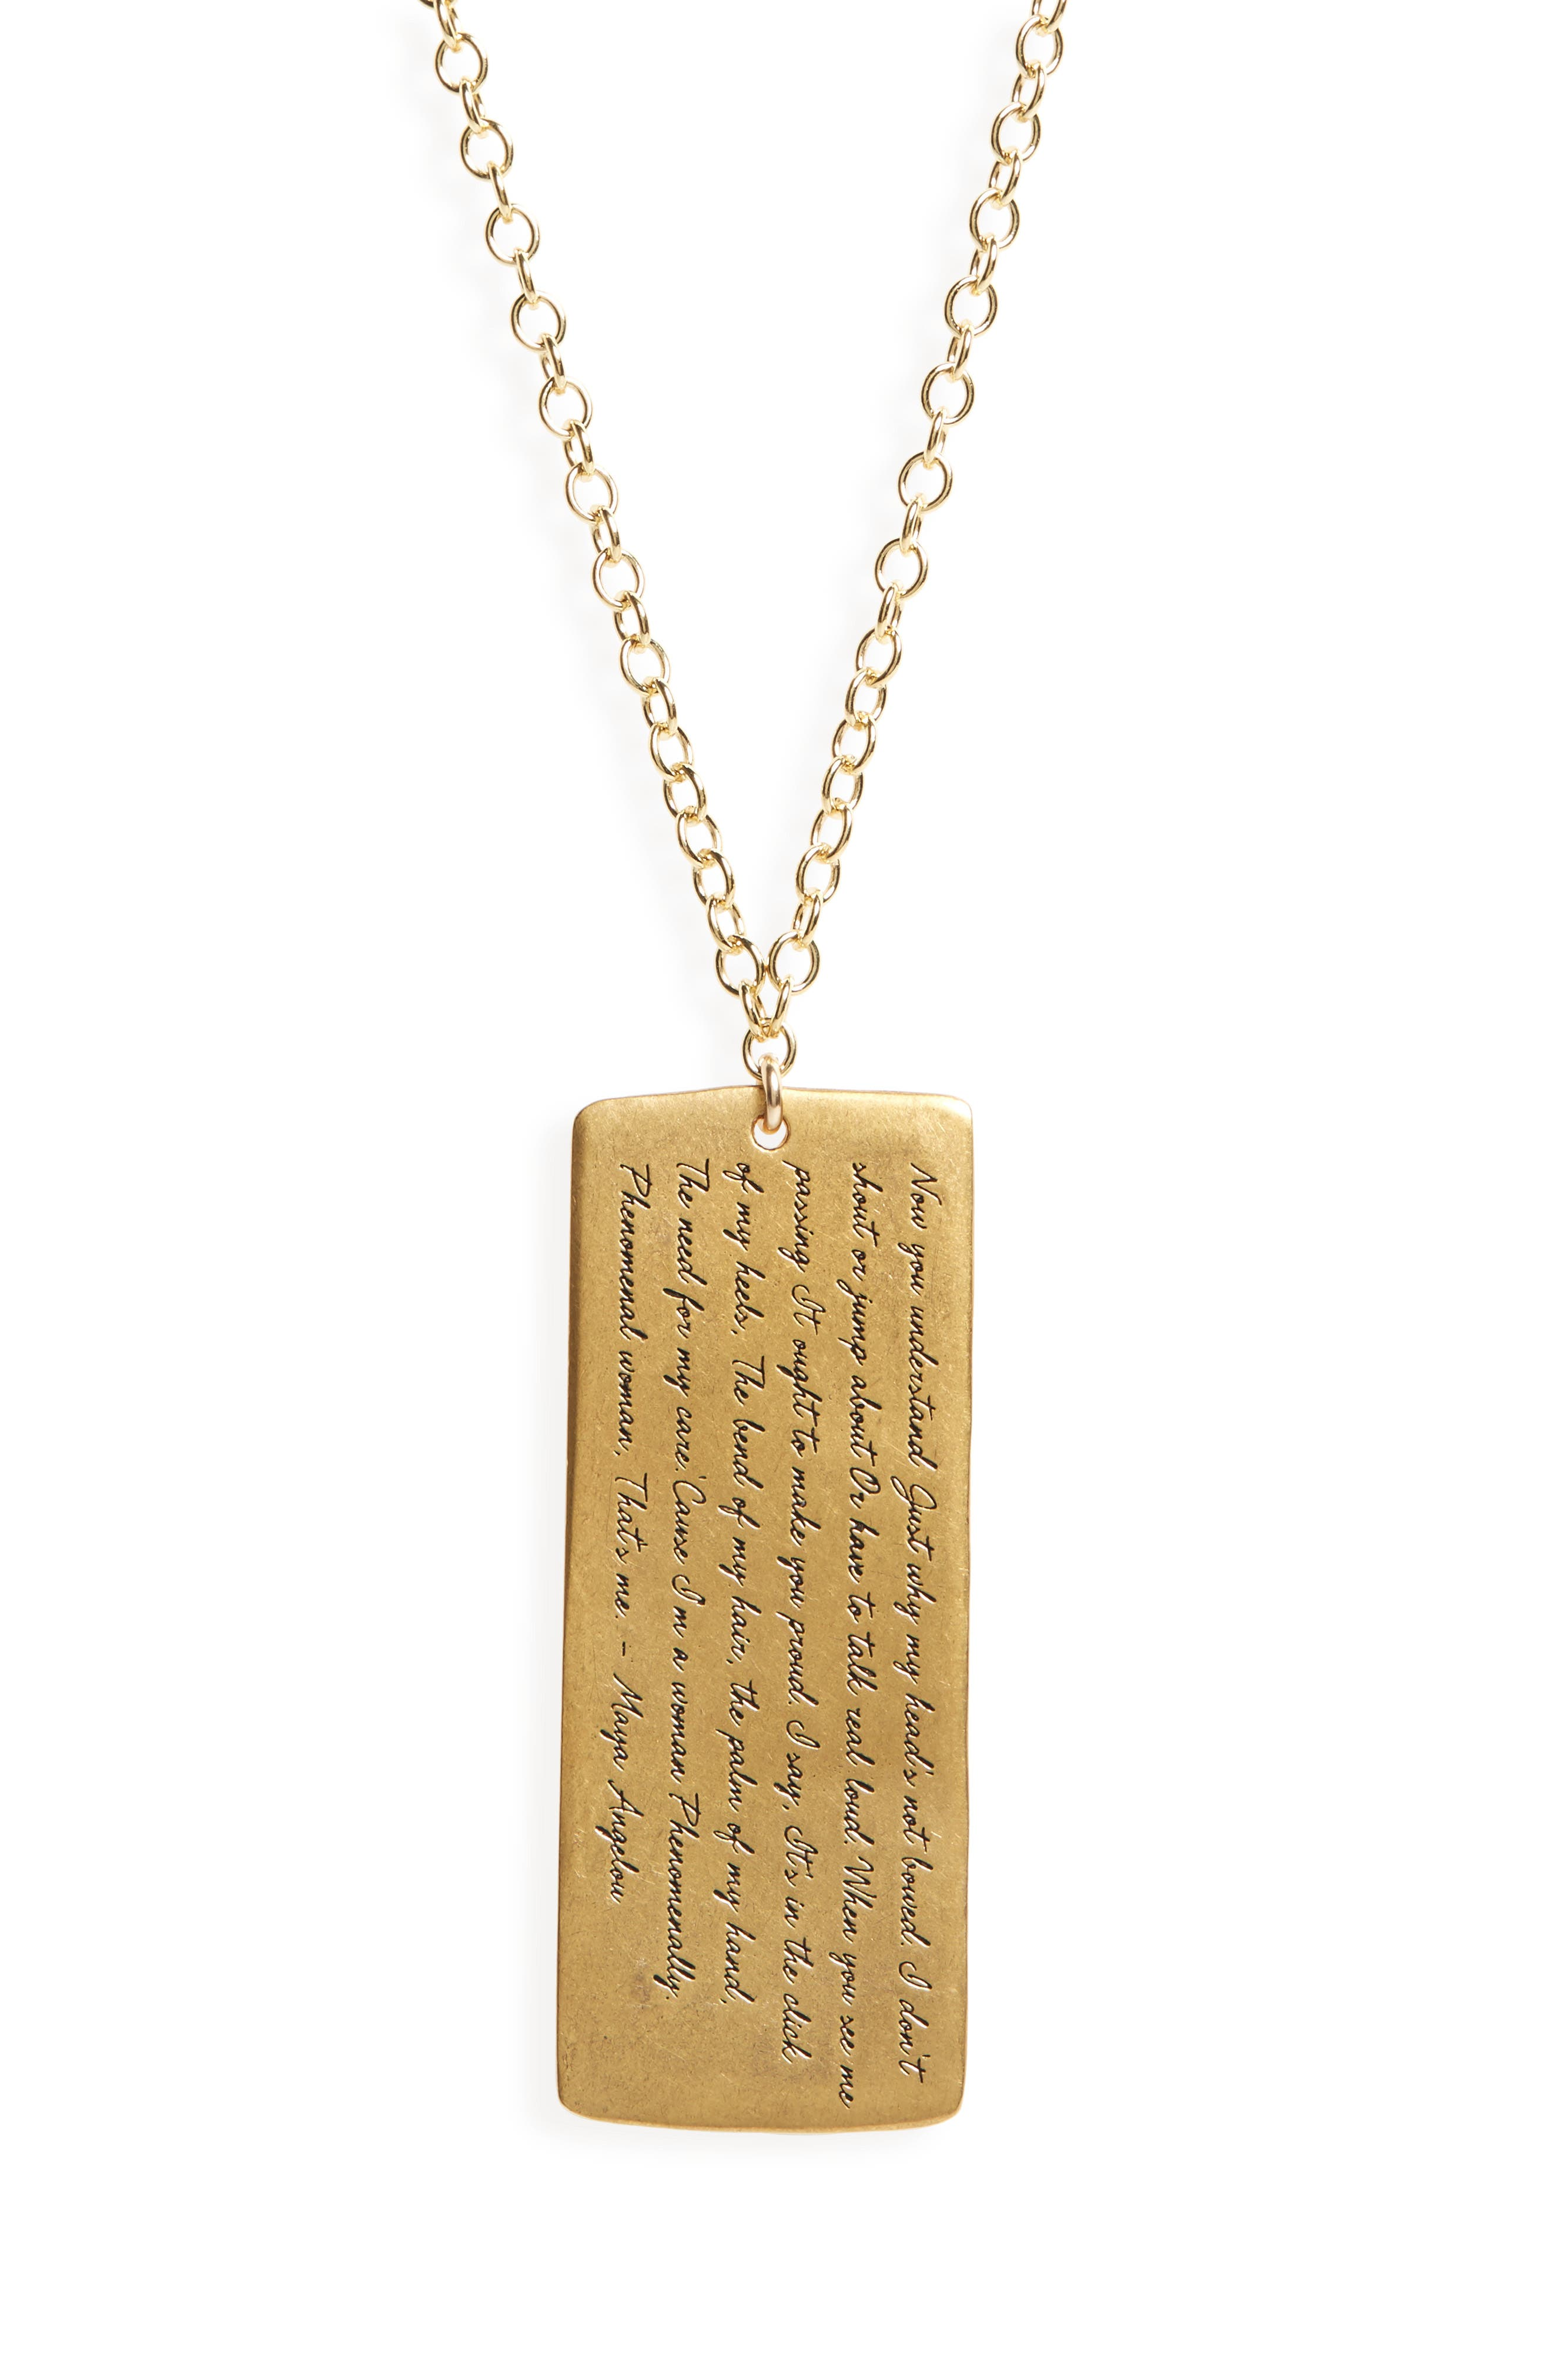 Legacy Collection - Phenomenal Women Large Tag Necklace,                             Alternate thumbnail 2, color,                             Gold